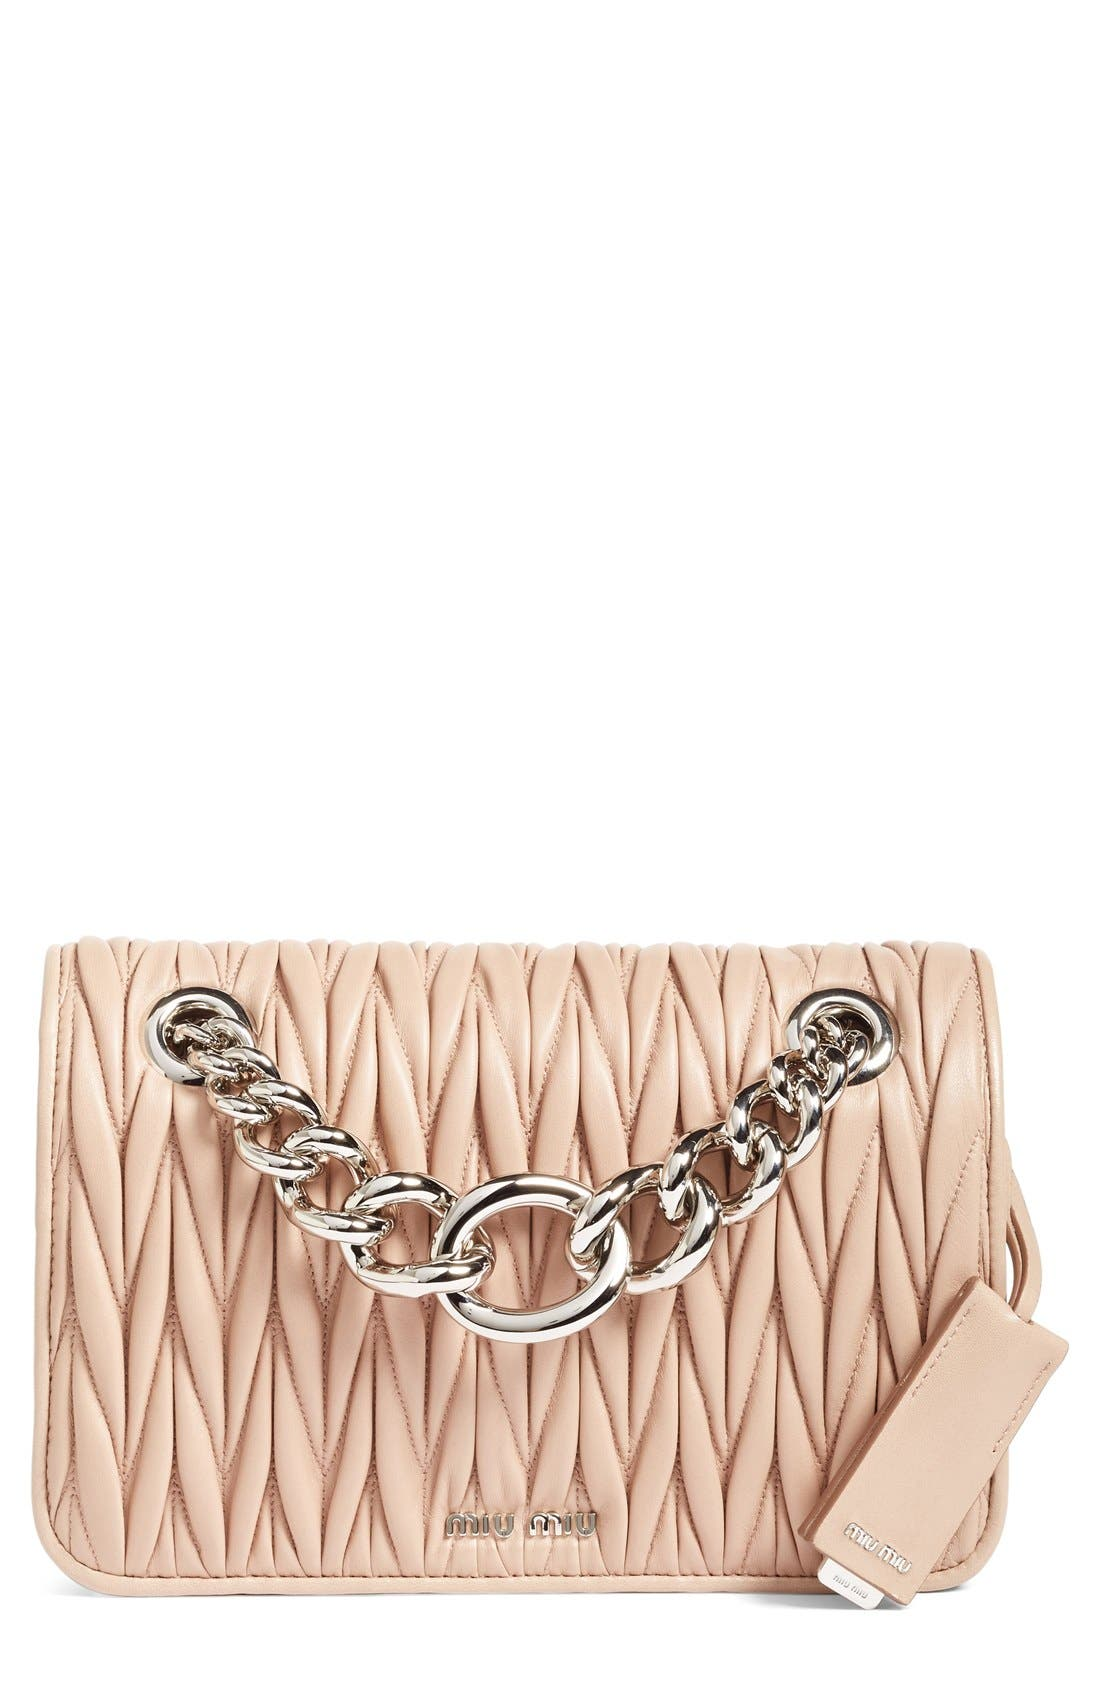 Main Image - Miu Miu Club Matelassé Leather Shoulder Bag